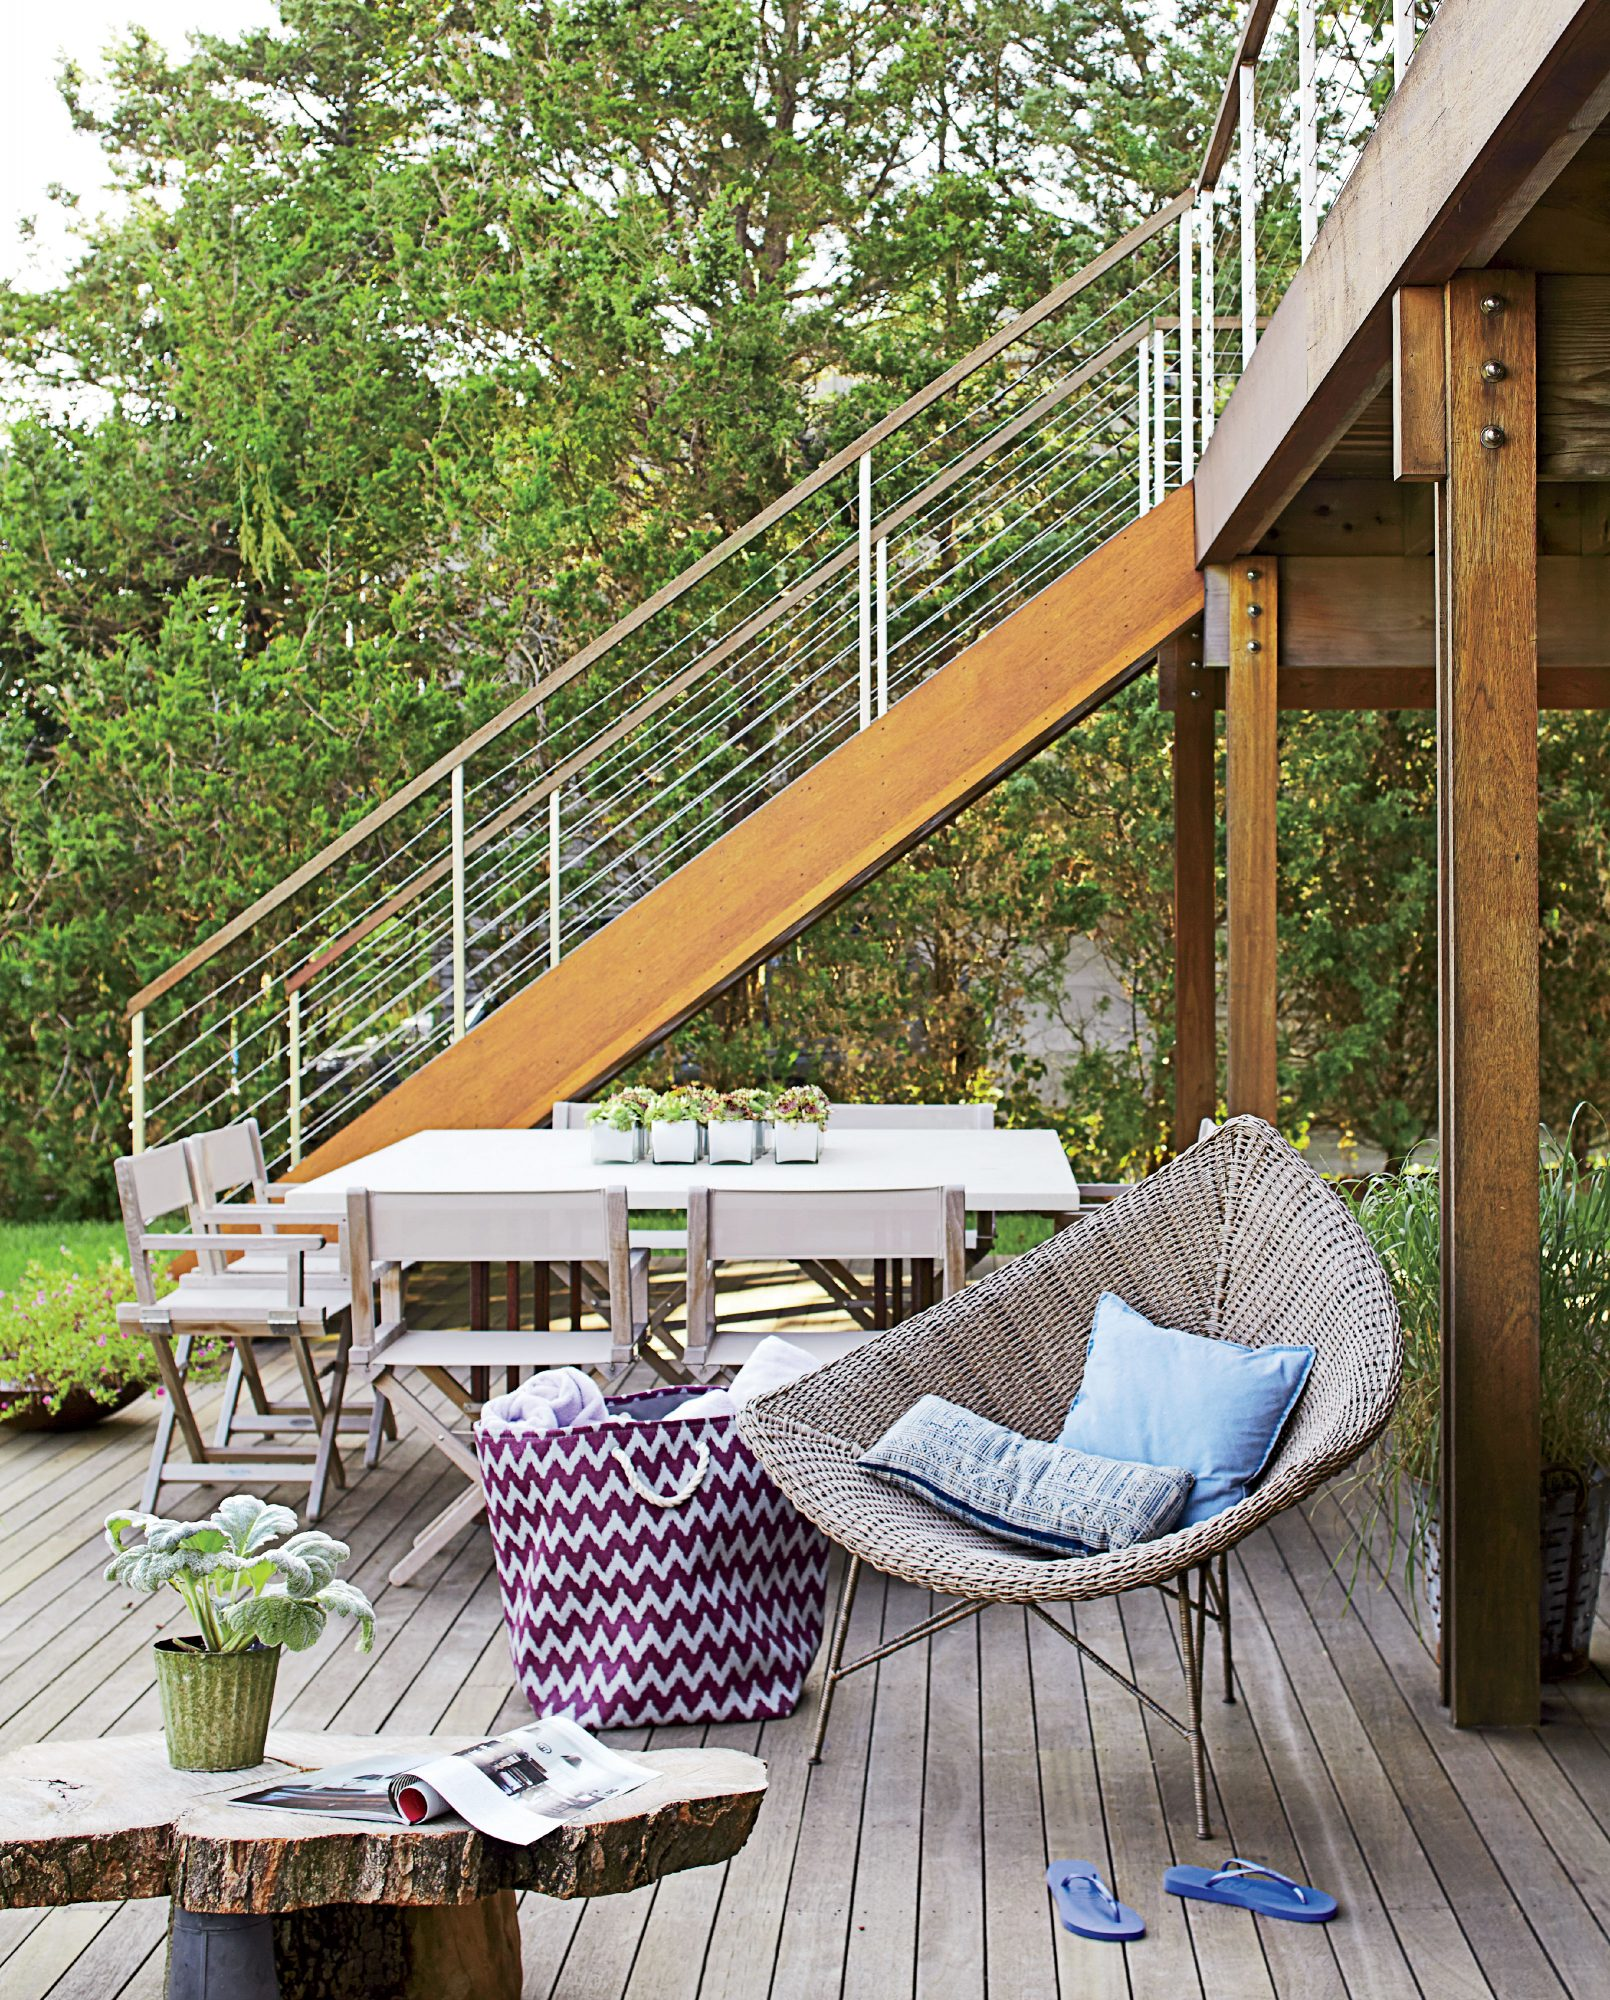 This simple, contemporary deck is ideal for hangouts in the fresh Southampton breeze. Directors chairs make for comfortable seating that invites guests to stay a while.